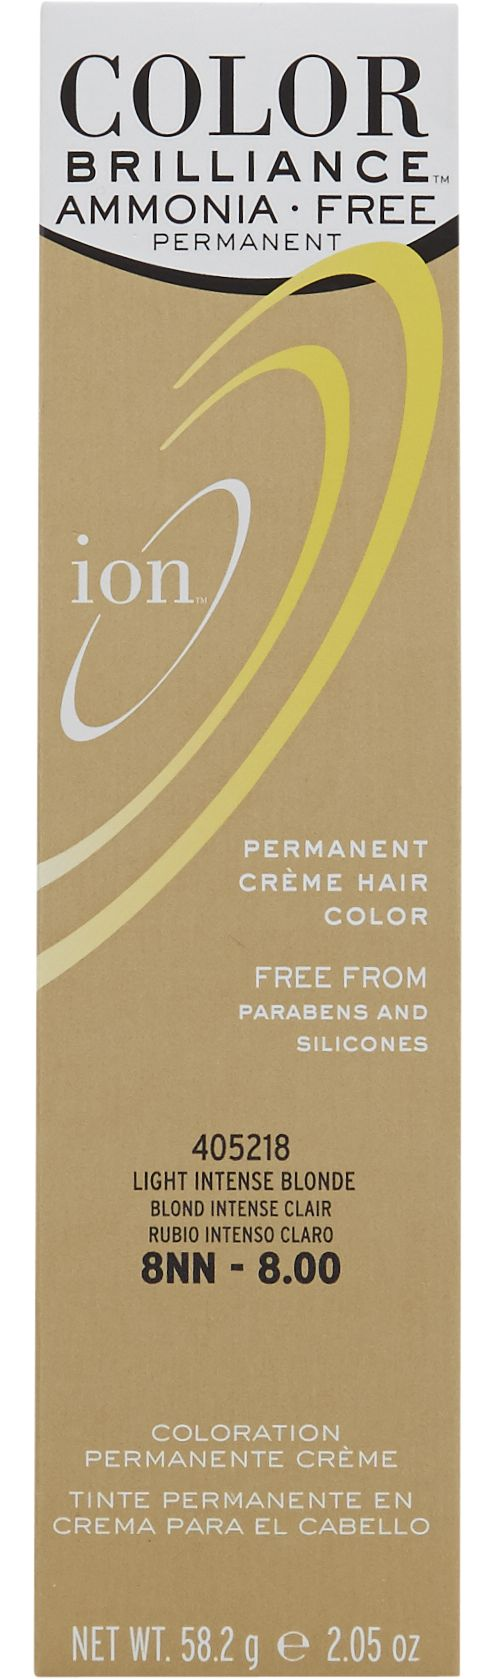 Ion Color Brilliance Ammonia Free Permanent Cr 232 Me Hair Color